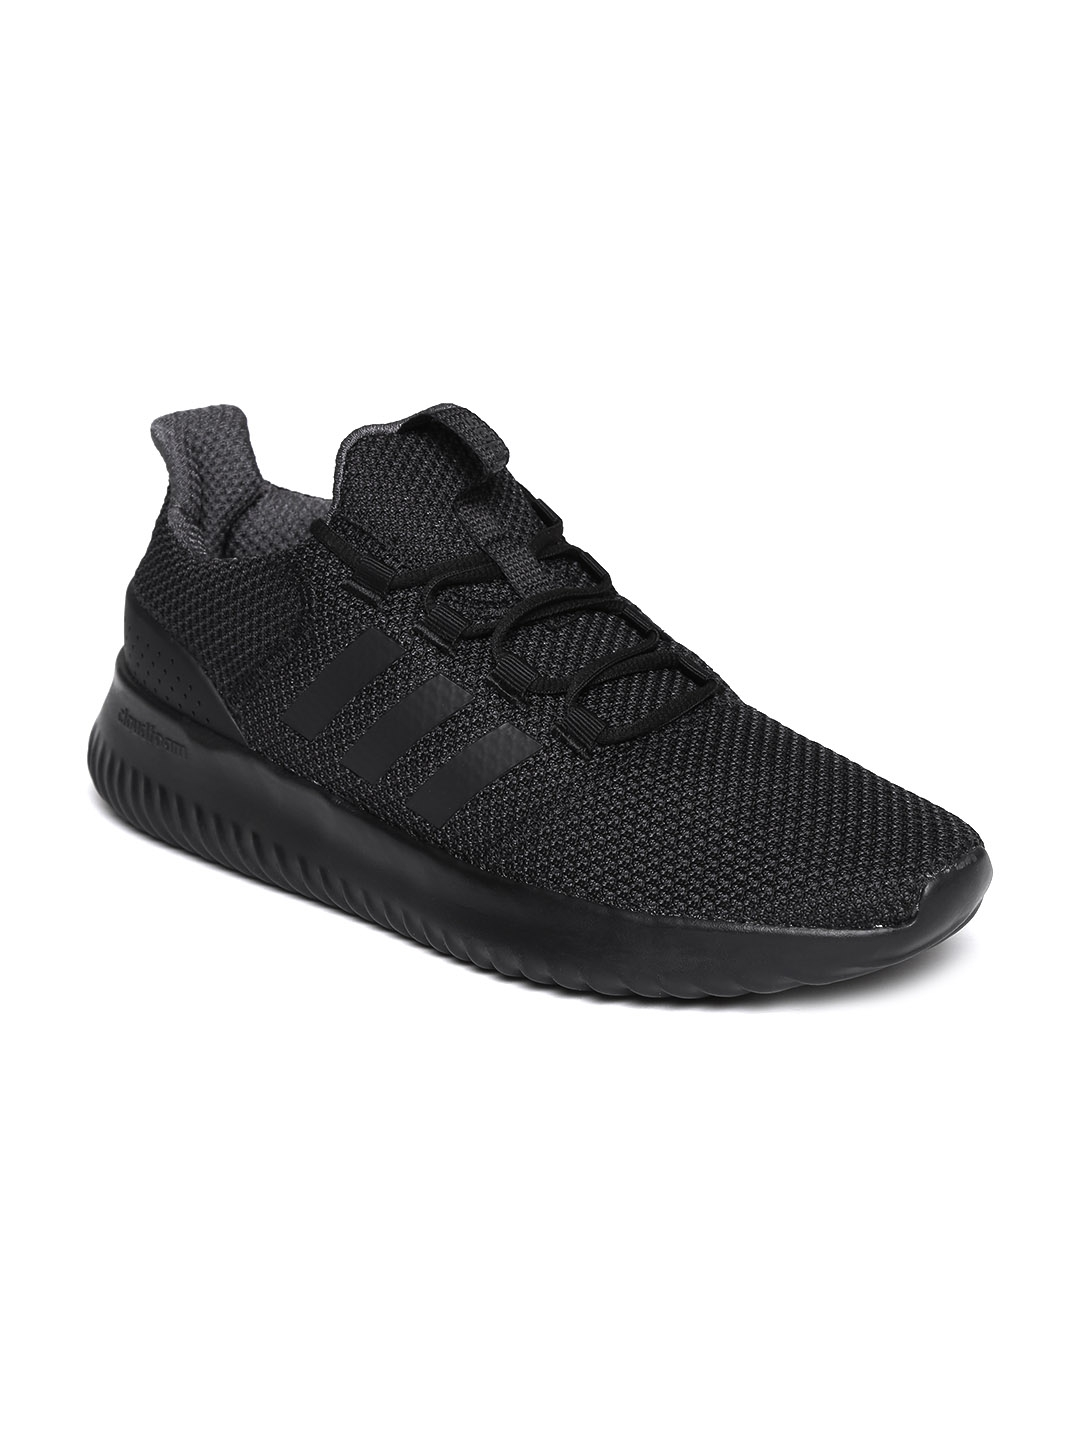 693c1e565 Buy ADIDAS NEO Men Black CLOUDFOAM ULTIMATE Sneakers - Casual Shoes ...